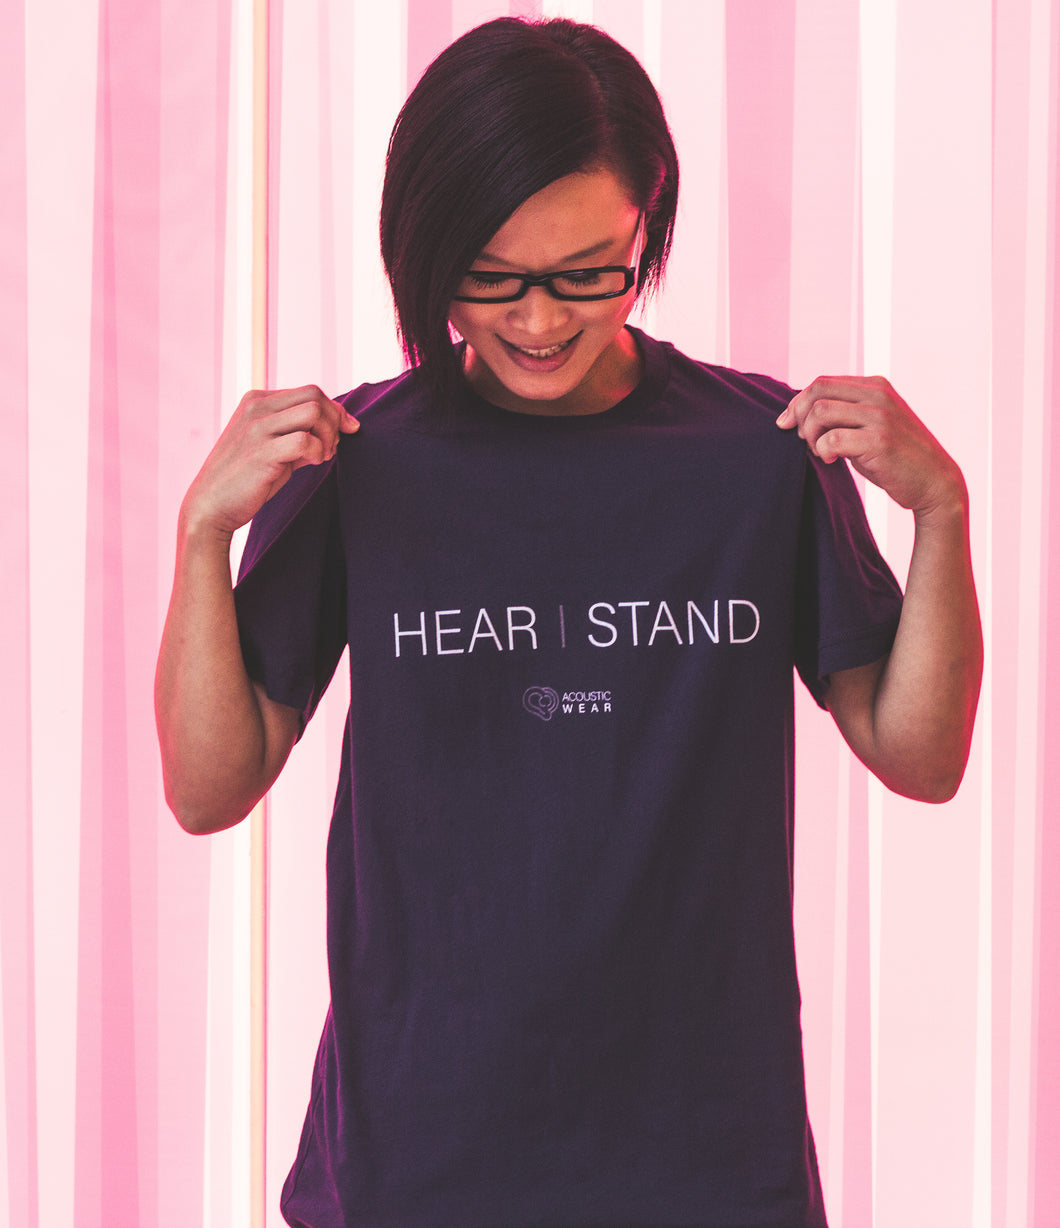 Hear I Stand Unisex Tee